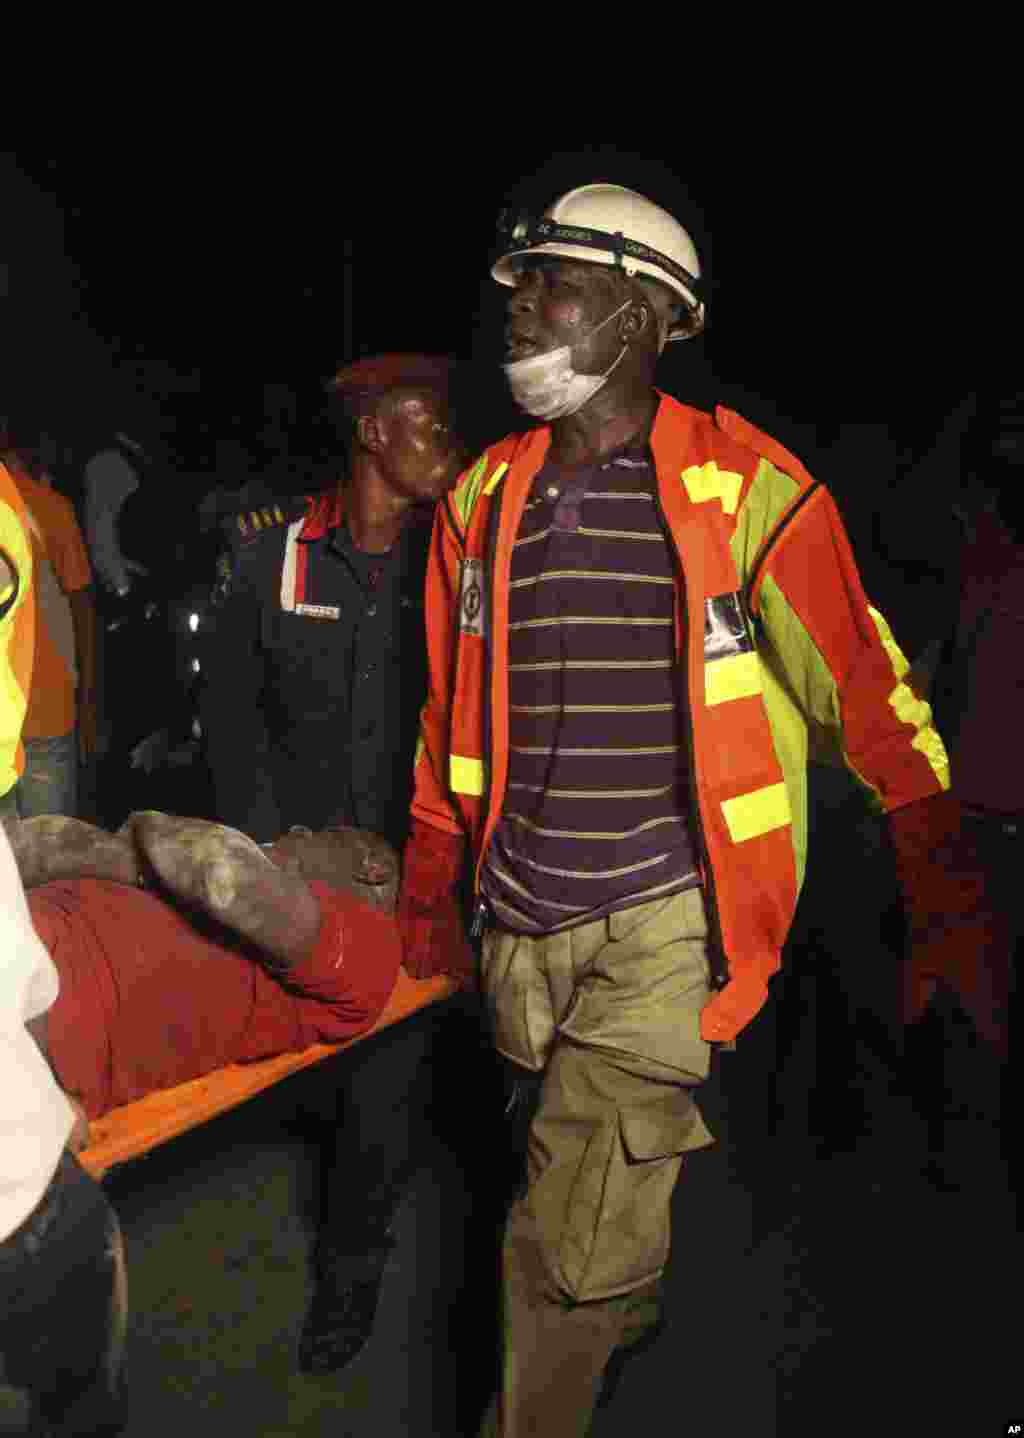 Rescue workers carry a survivor from the rubble of a building under construction which collapsed in Lagos, Nigeria, Nov, 4. 2013.